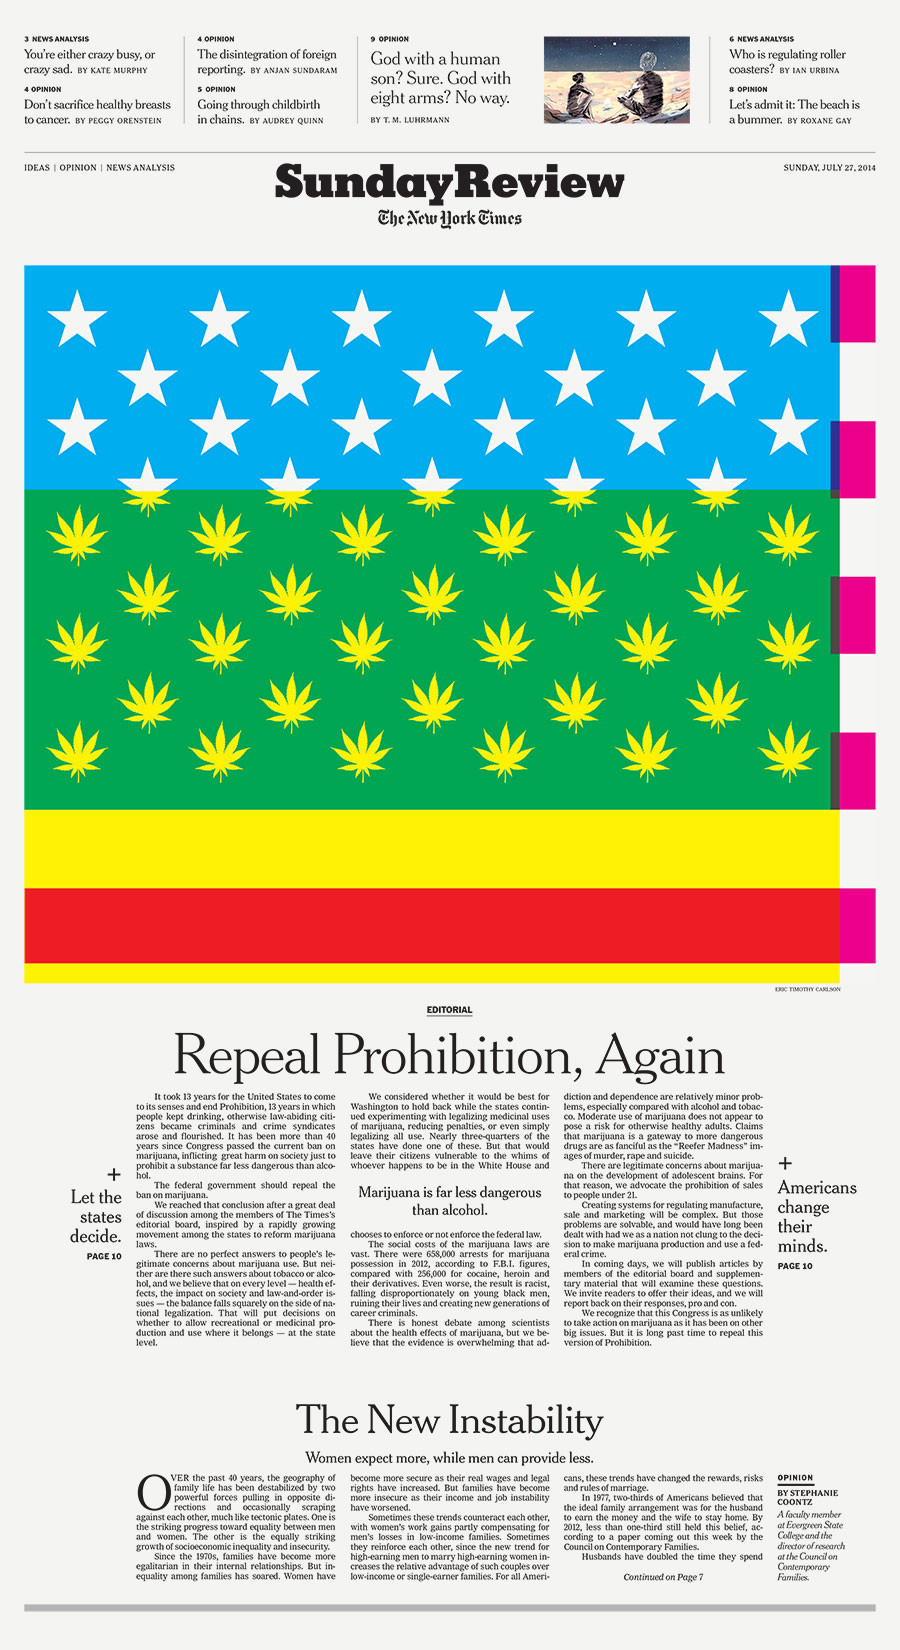 Repeal Prohibition Again